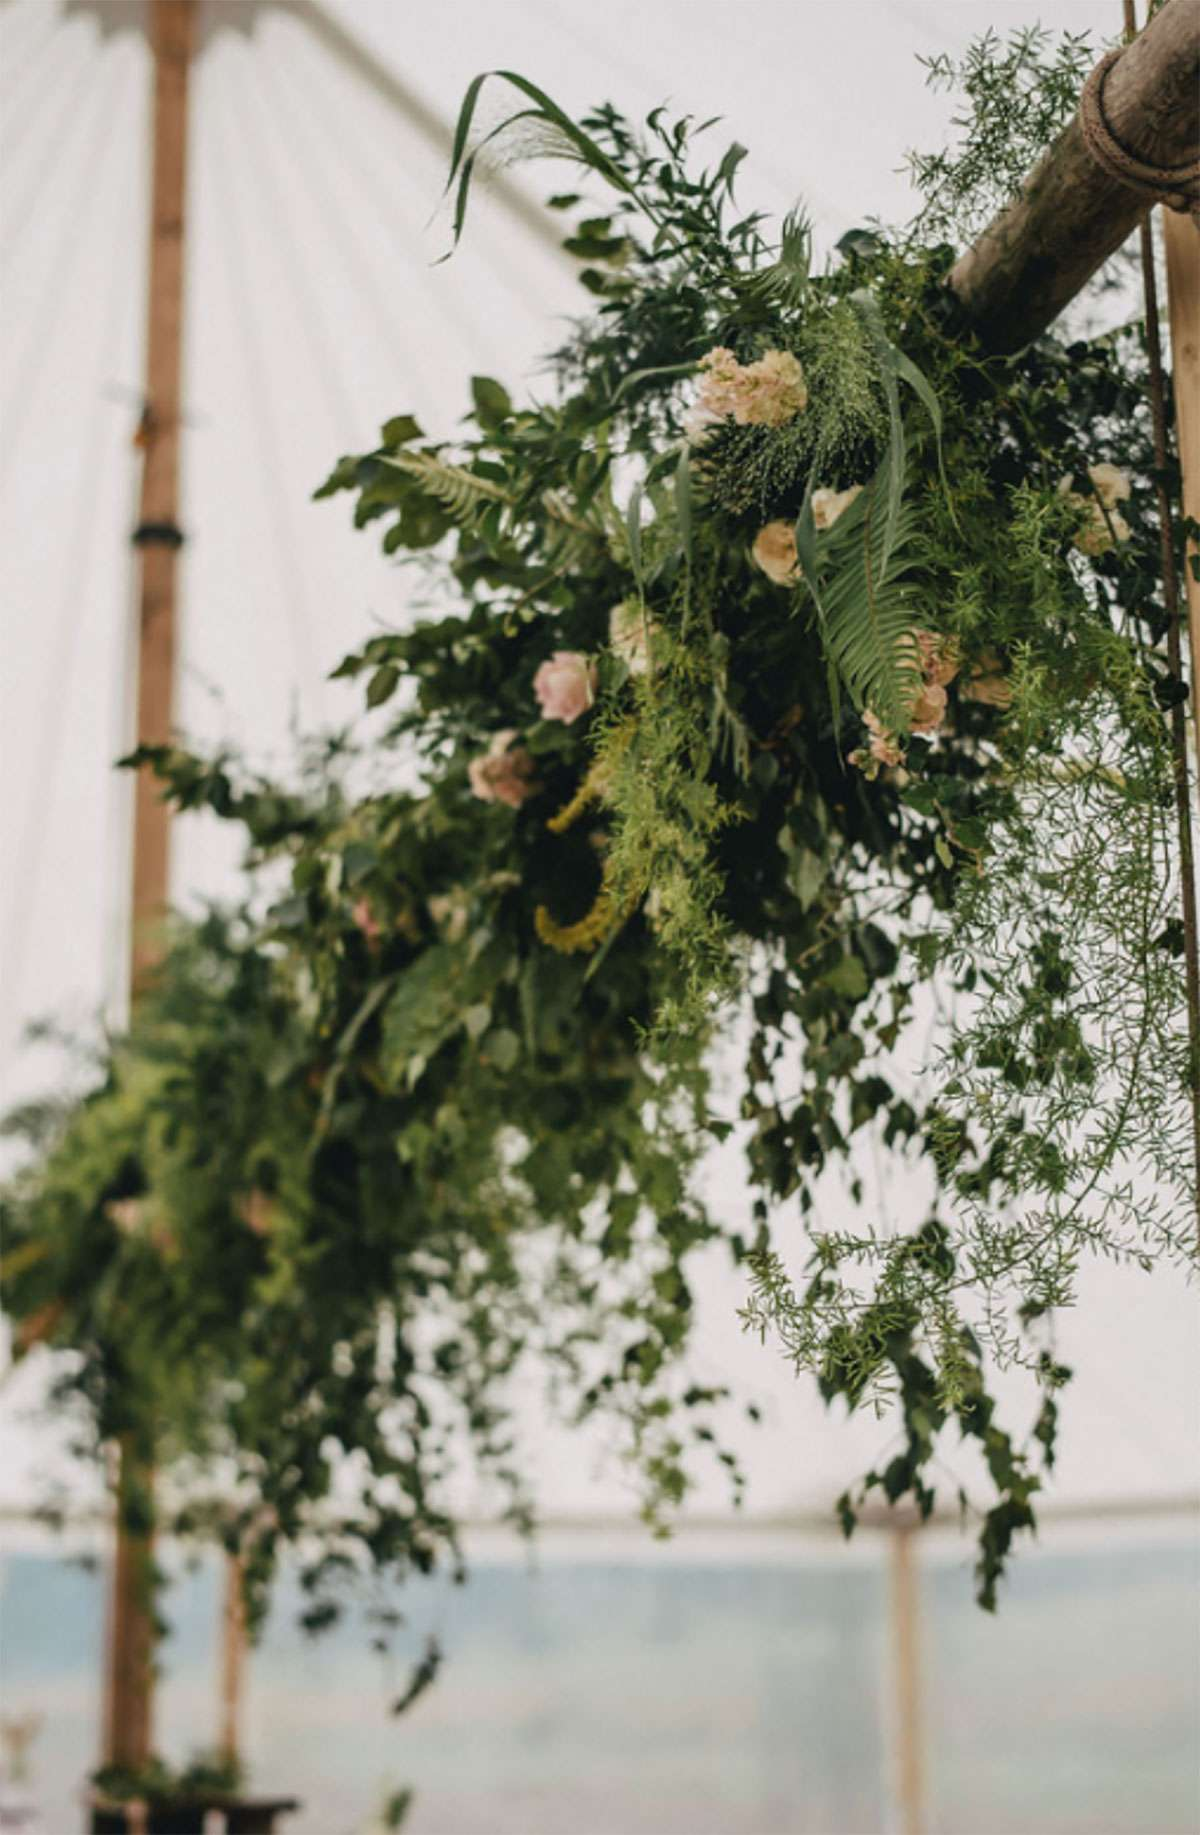 floral pole in sailcloth tent